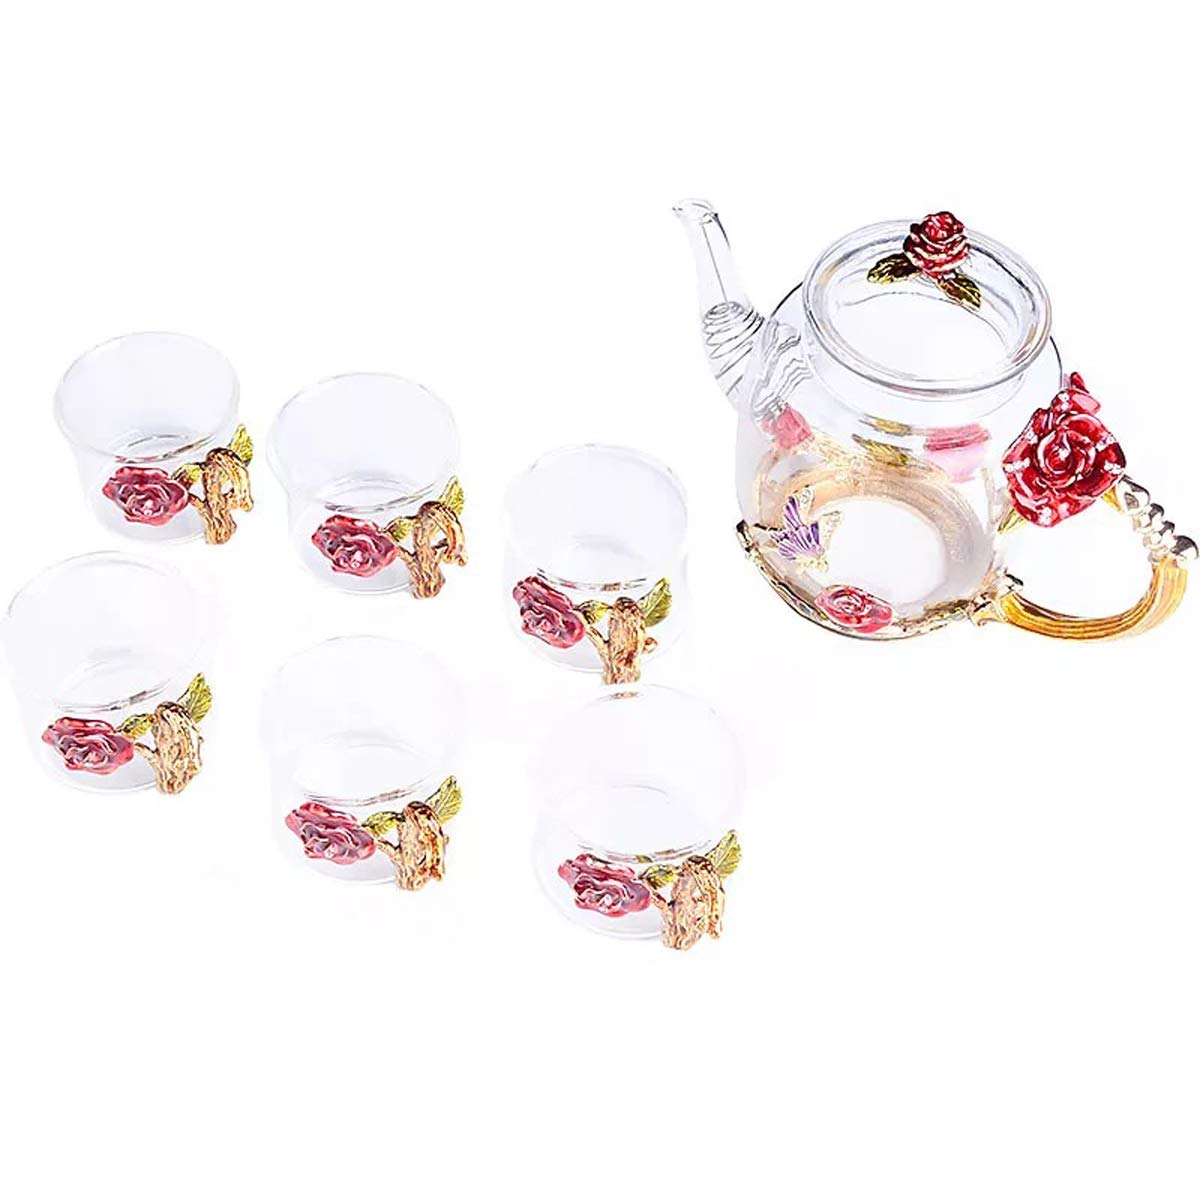 YBK Tech Creative Flower Glass Teapot and Cup Set Crystal Glass Kung Fu Tea Cup Set for Hot Beverage, Iced Tea, Naked Juice, for Sister, Mom, Grandma, Teachers- Rose (Red)